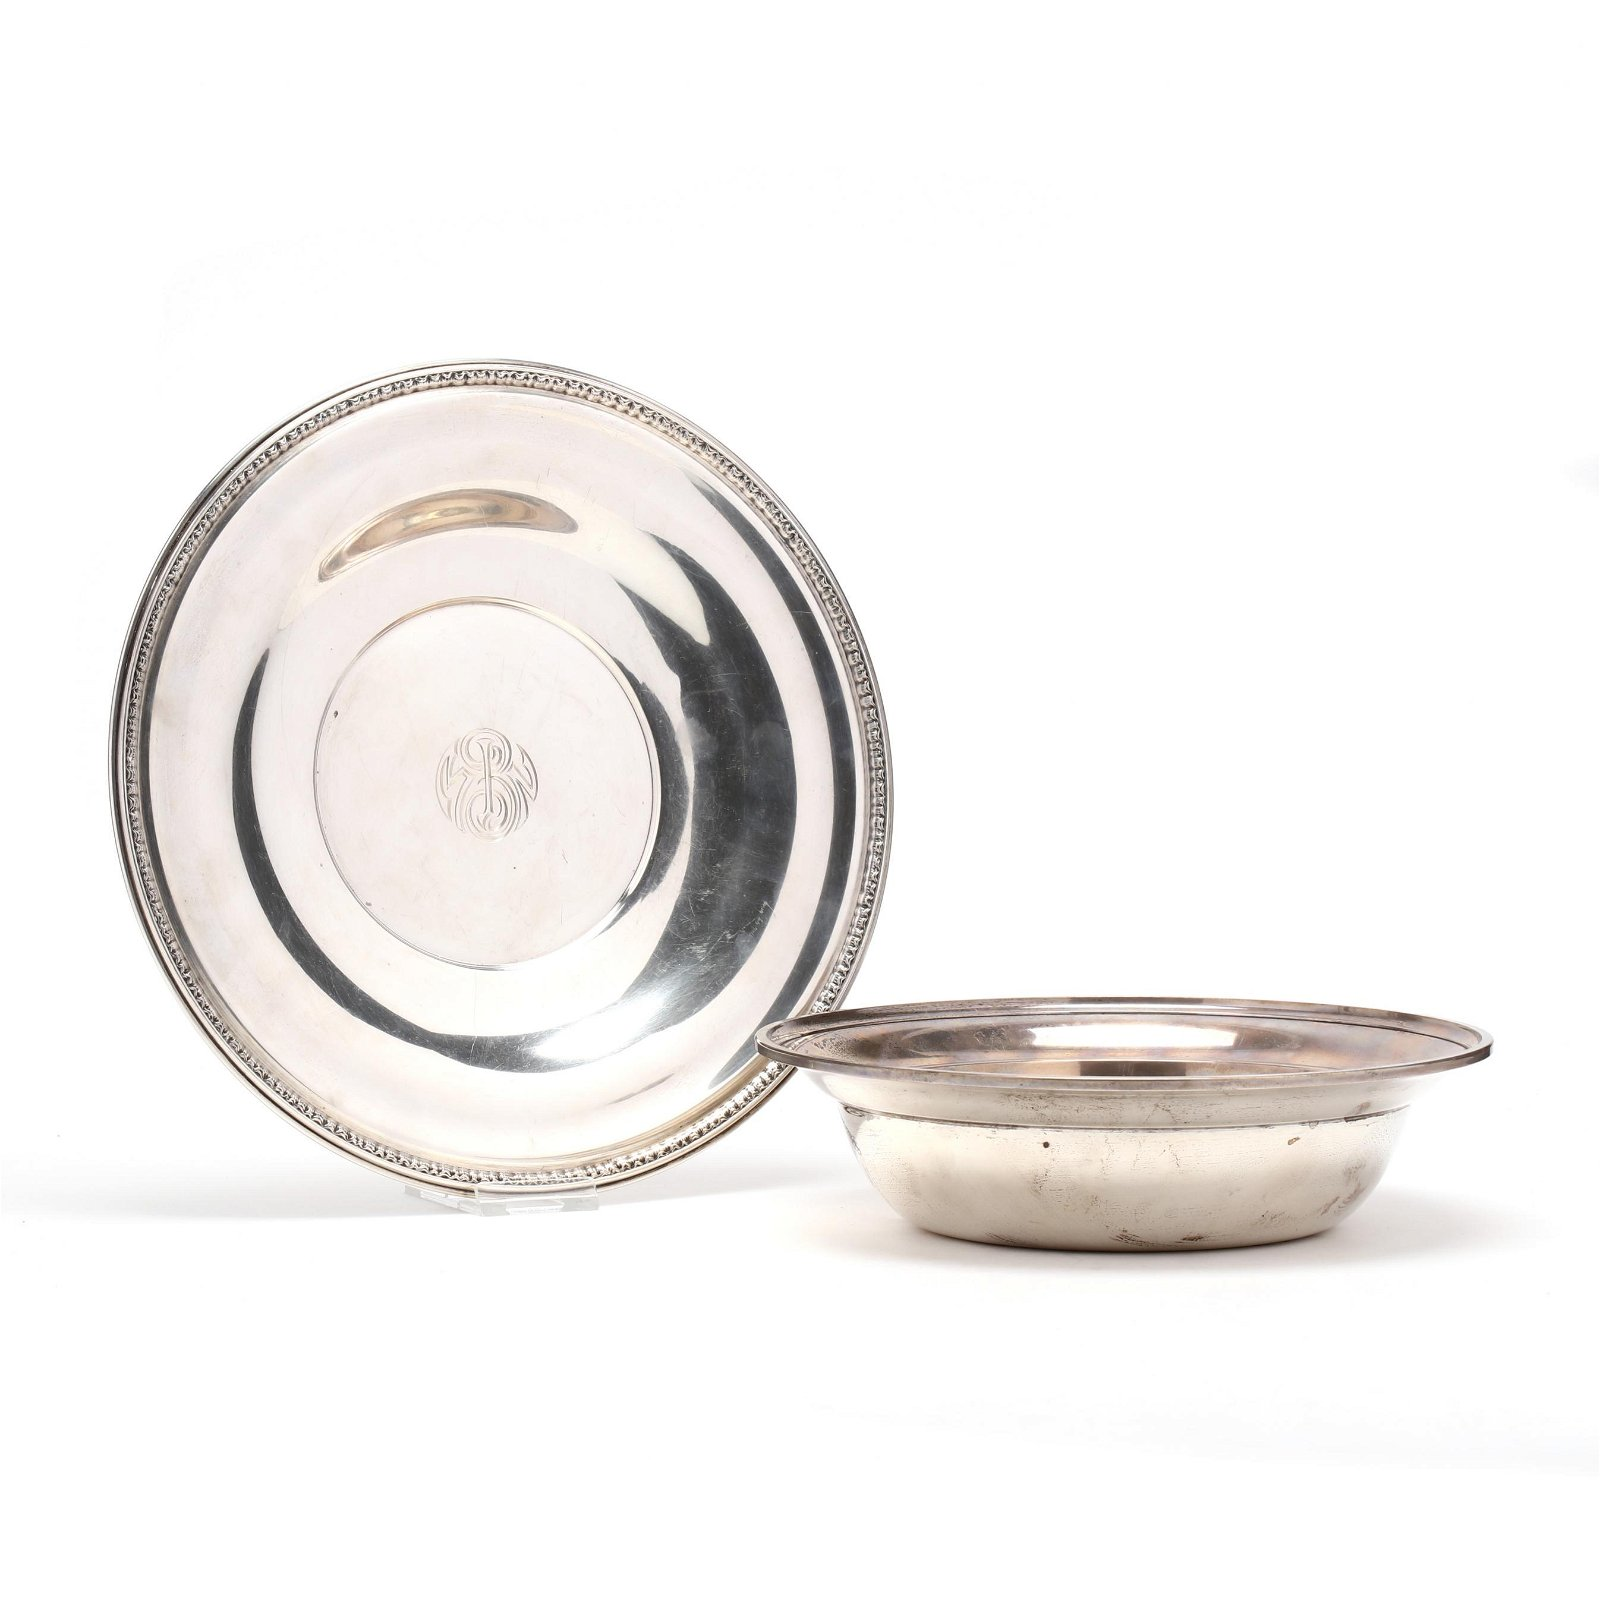 A Sterling Silver Serving Bowl and Cake Plate